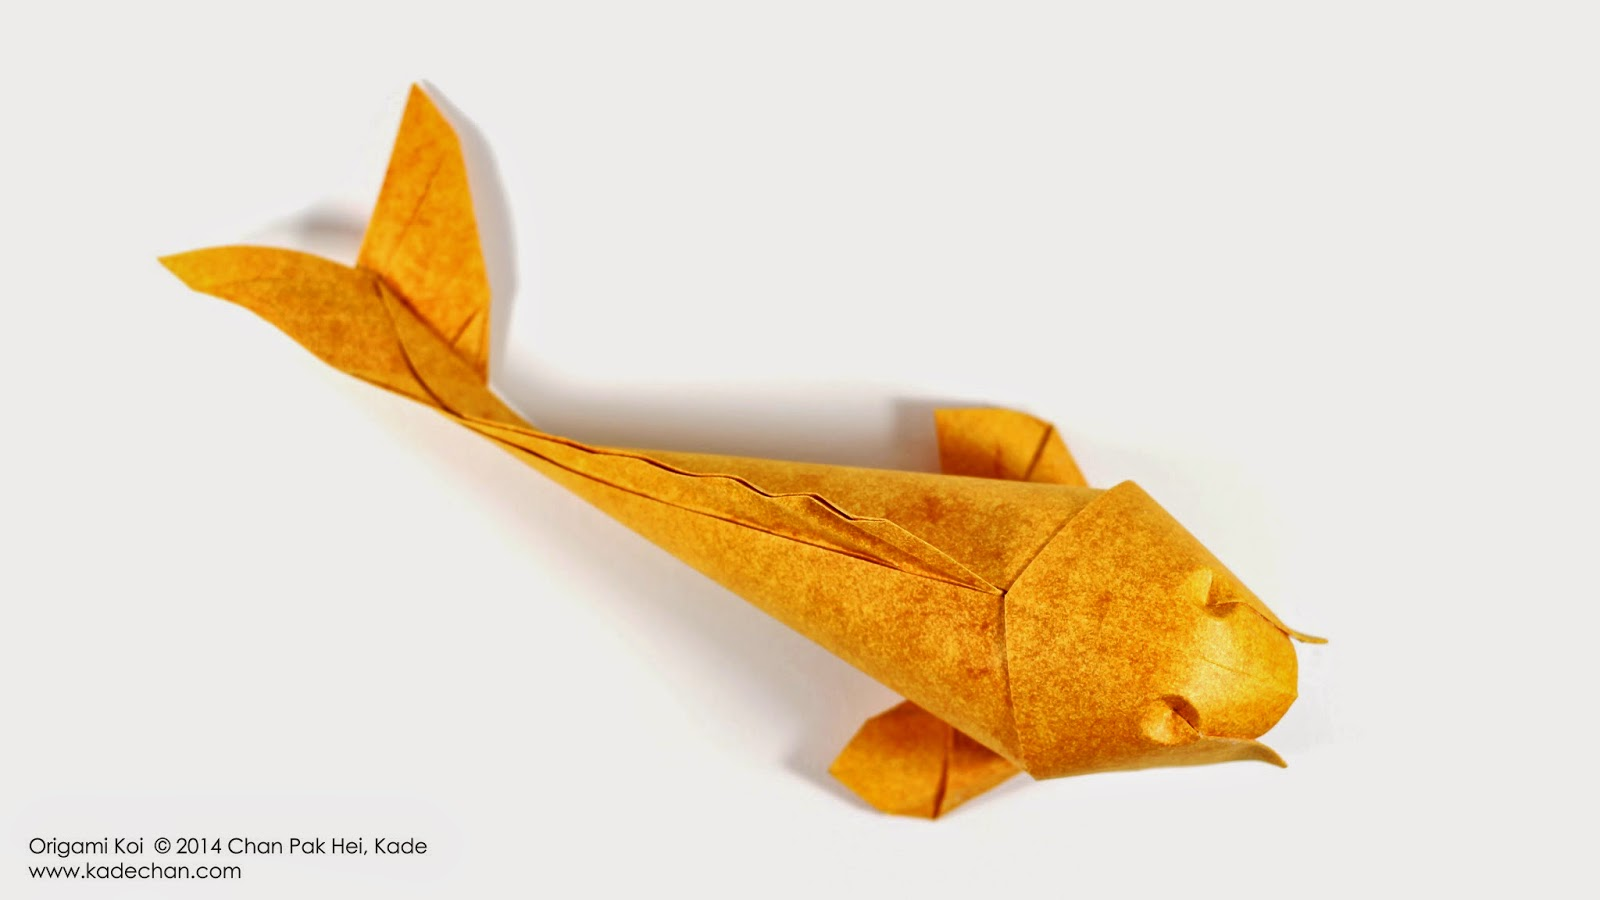 Kade chan origami blog origami koi fish for Origami koi fish